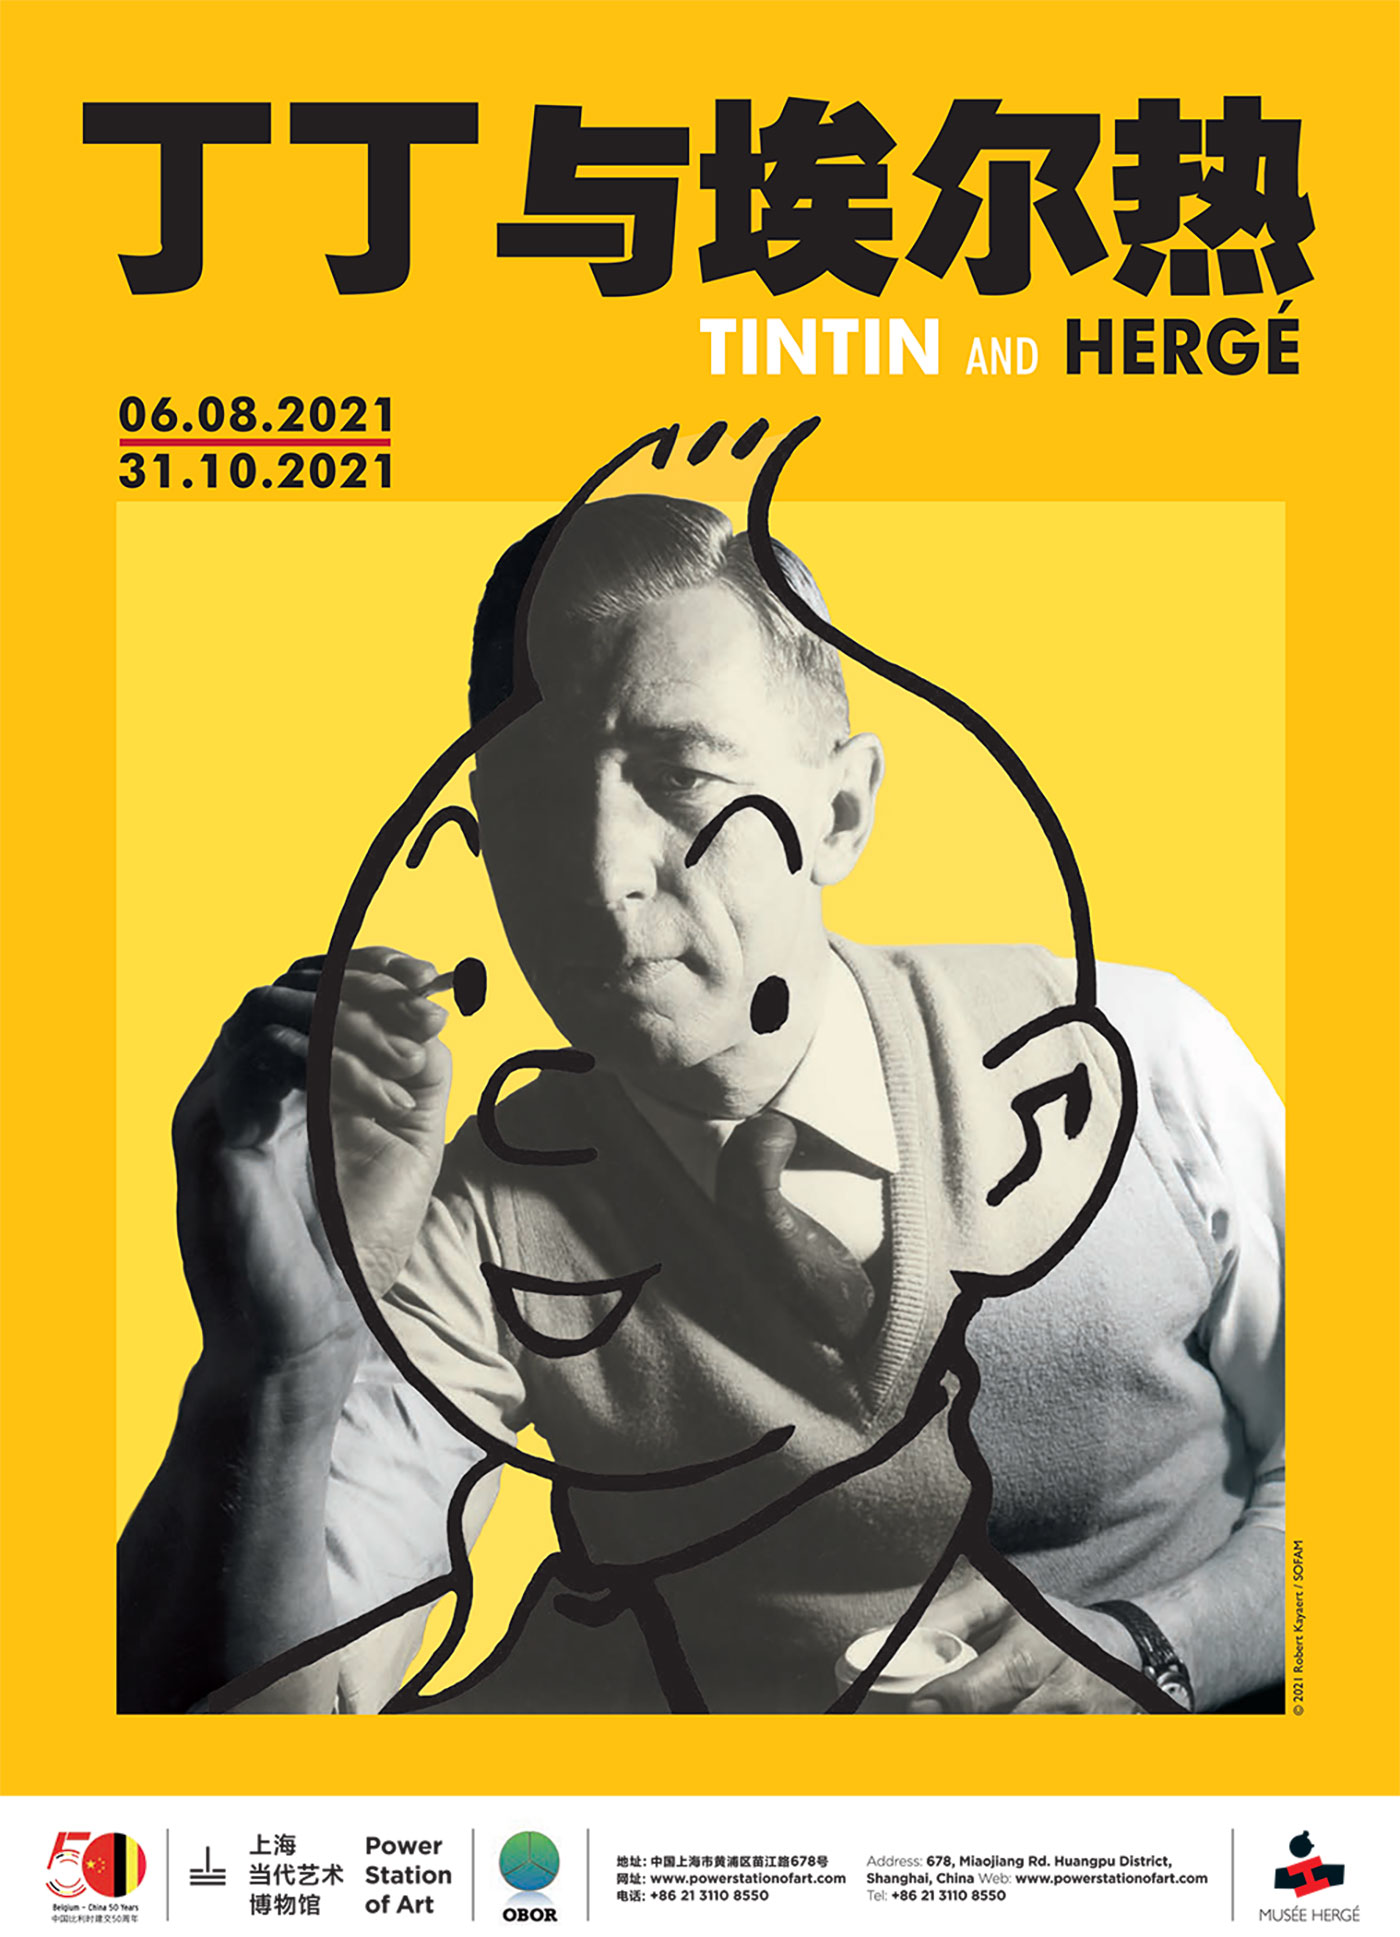 Affiche Tintin and Hergé